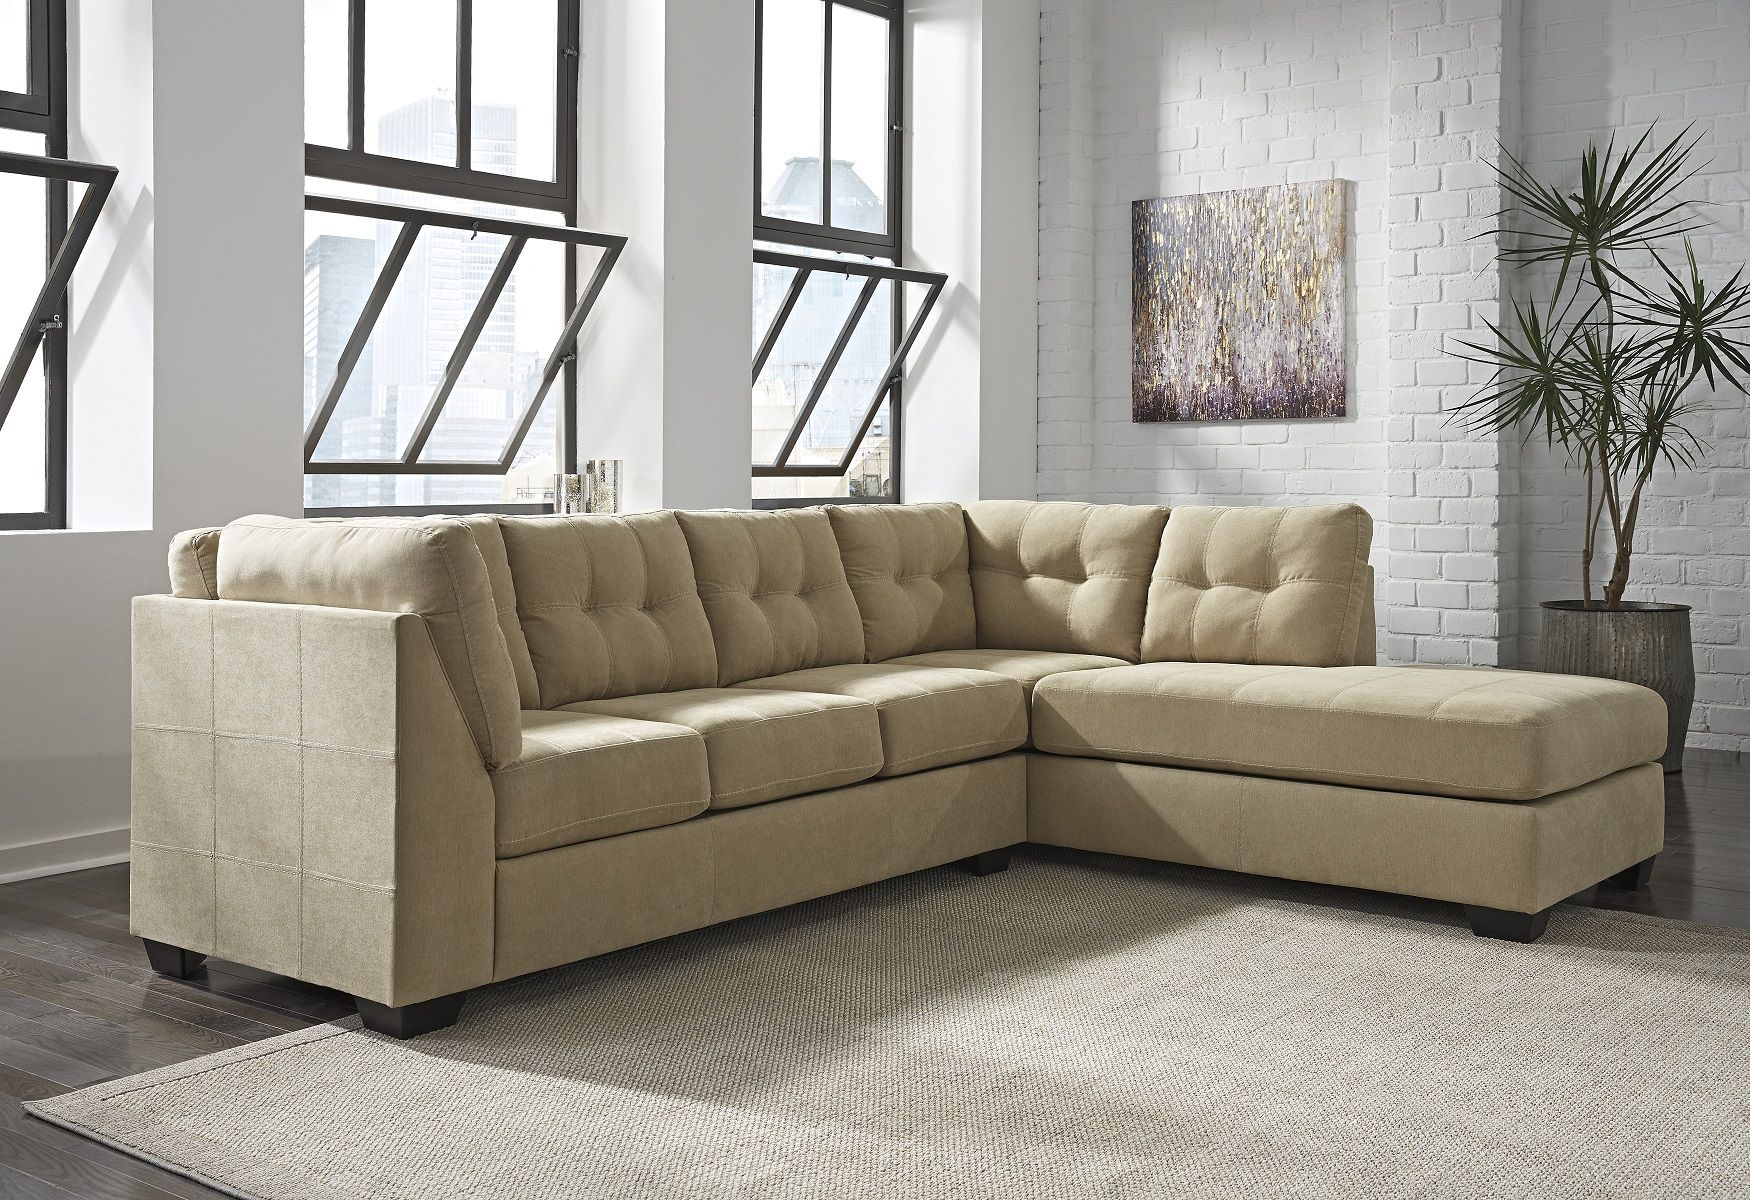 Maier Sectional Sofa 45203 17 By Ashley Furniture Sleek Design Urban Style  Cocoa Upholstery